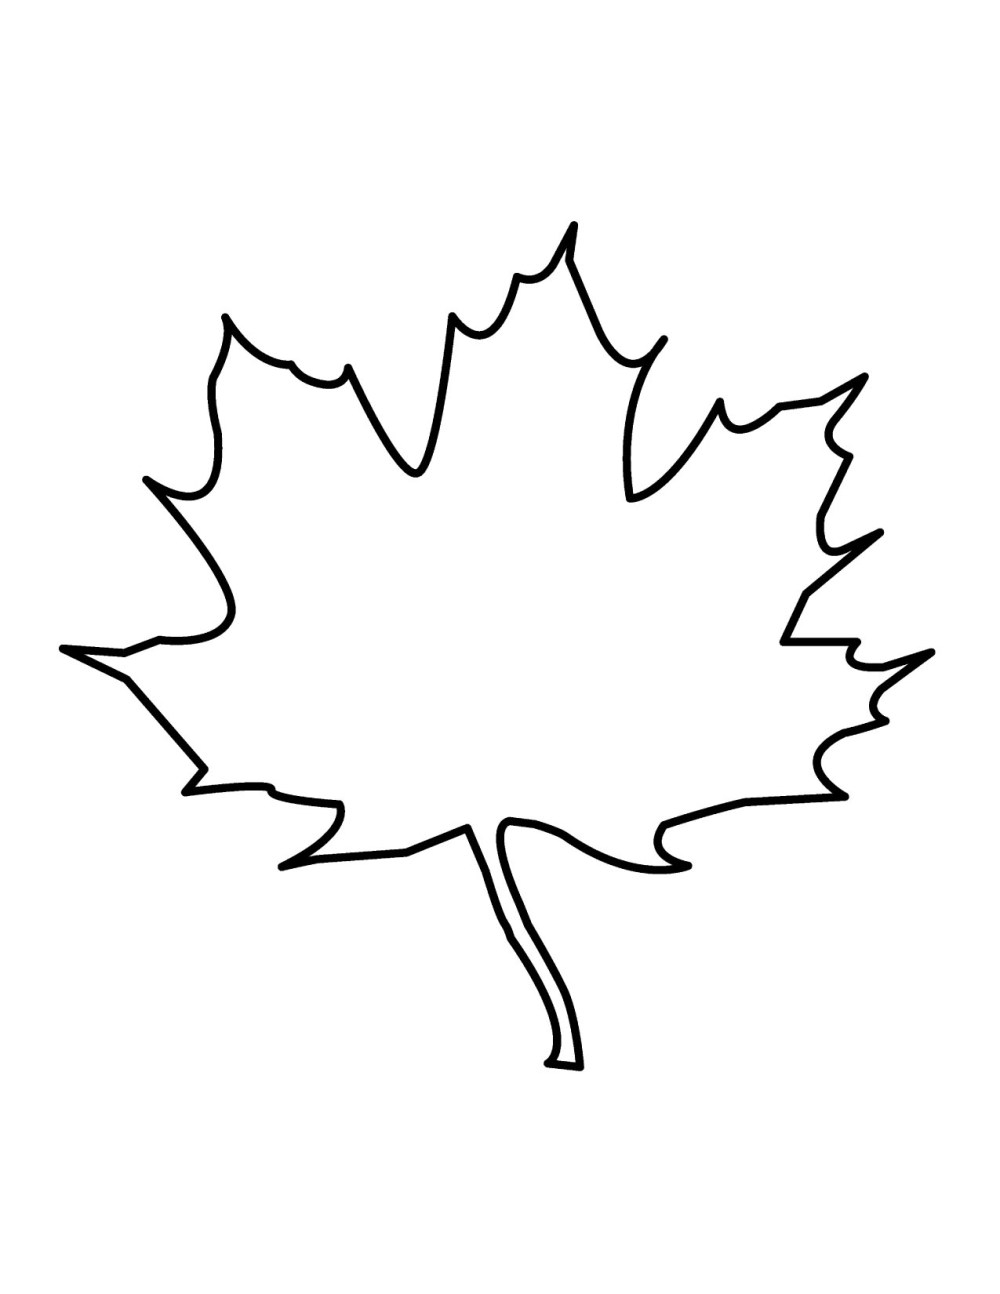 medium resolution of 1275x1650 18 fall leaves outline free cliparts that you can download to you